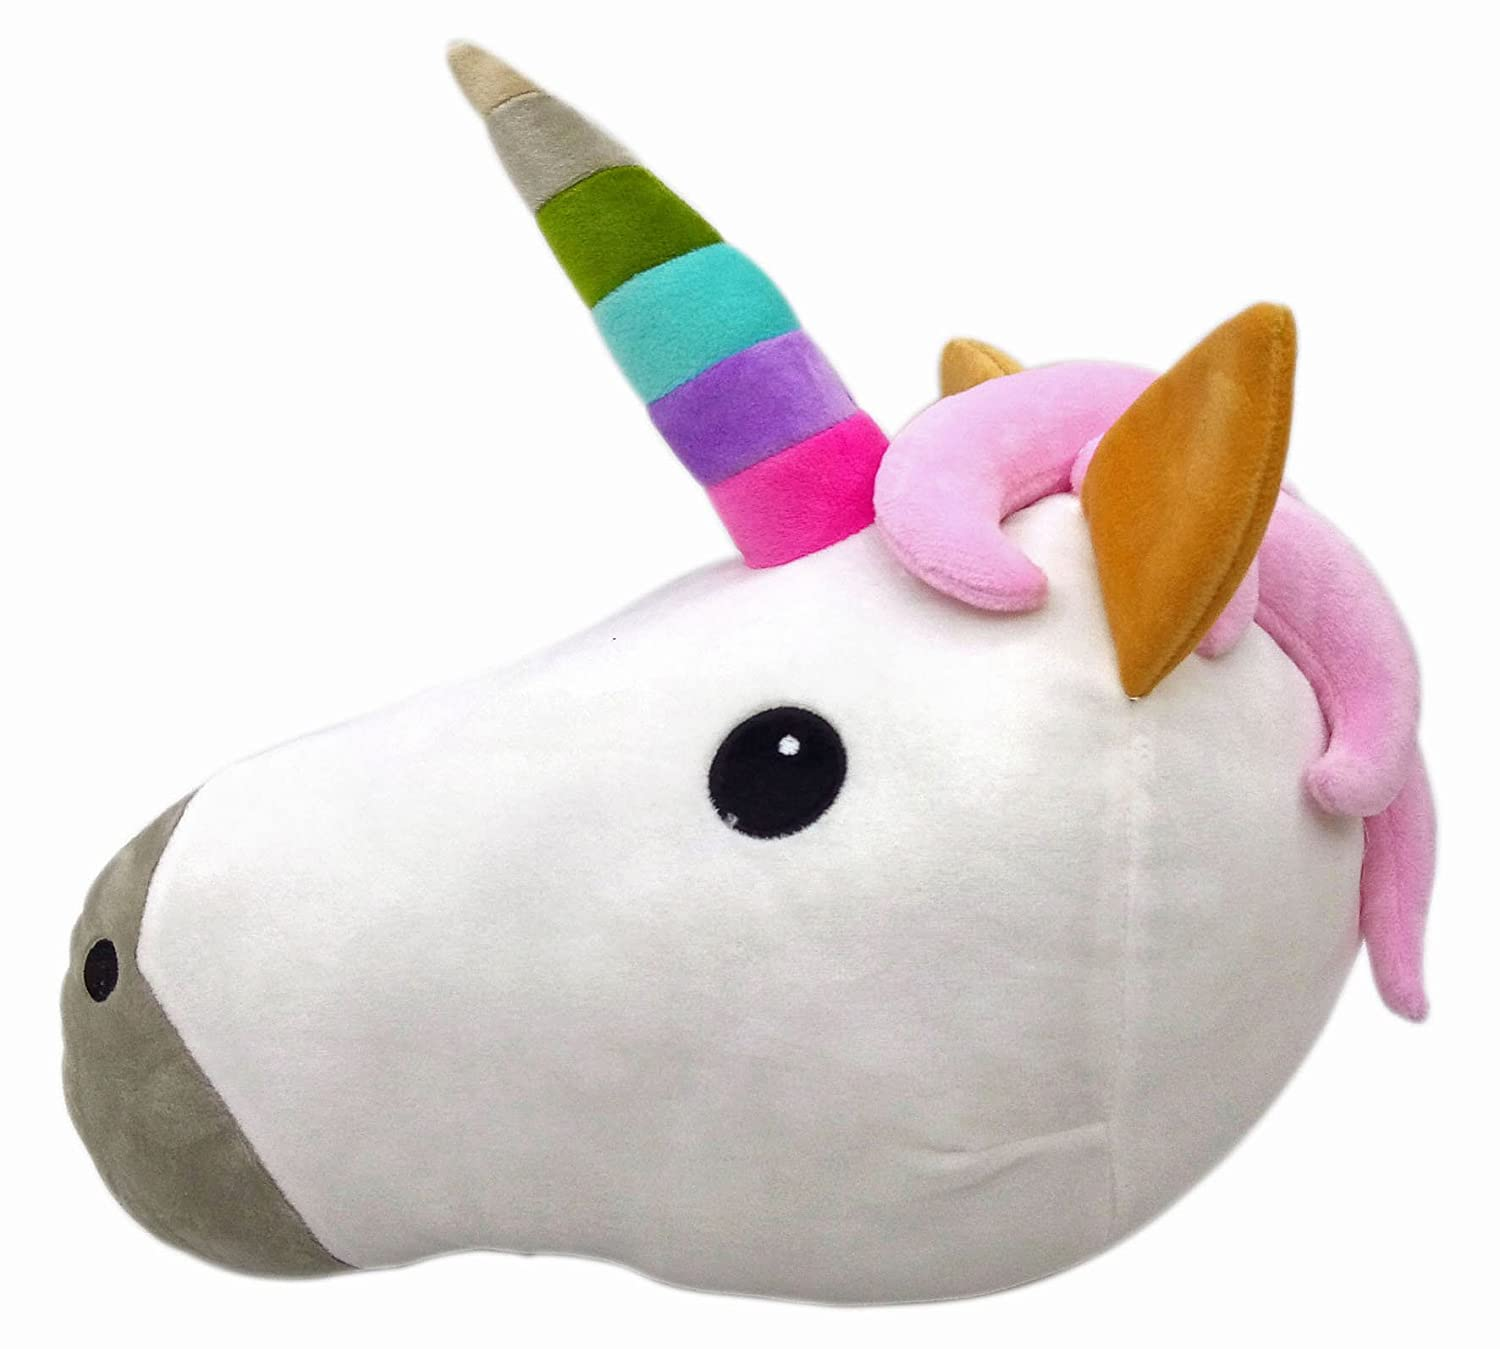 WEP Unicorn Emoji Pillow Smiley Emoticon Cushion Stuffed Colorful Plush Toy 32cm New